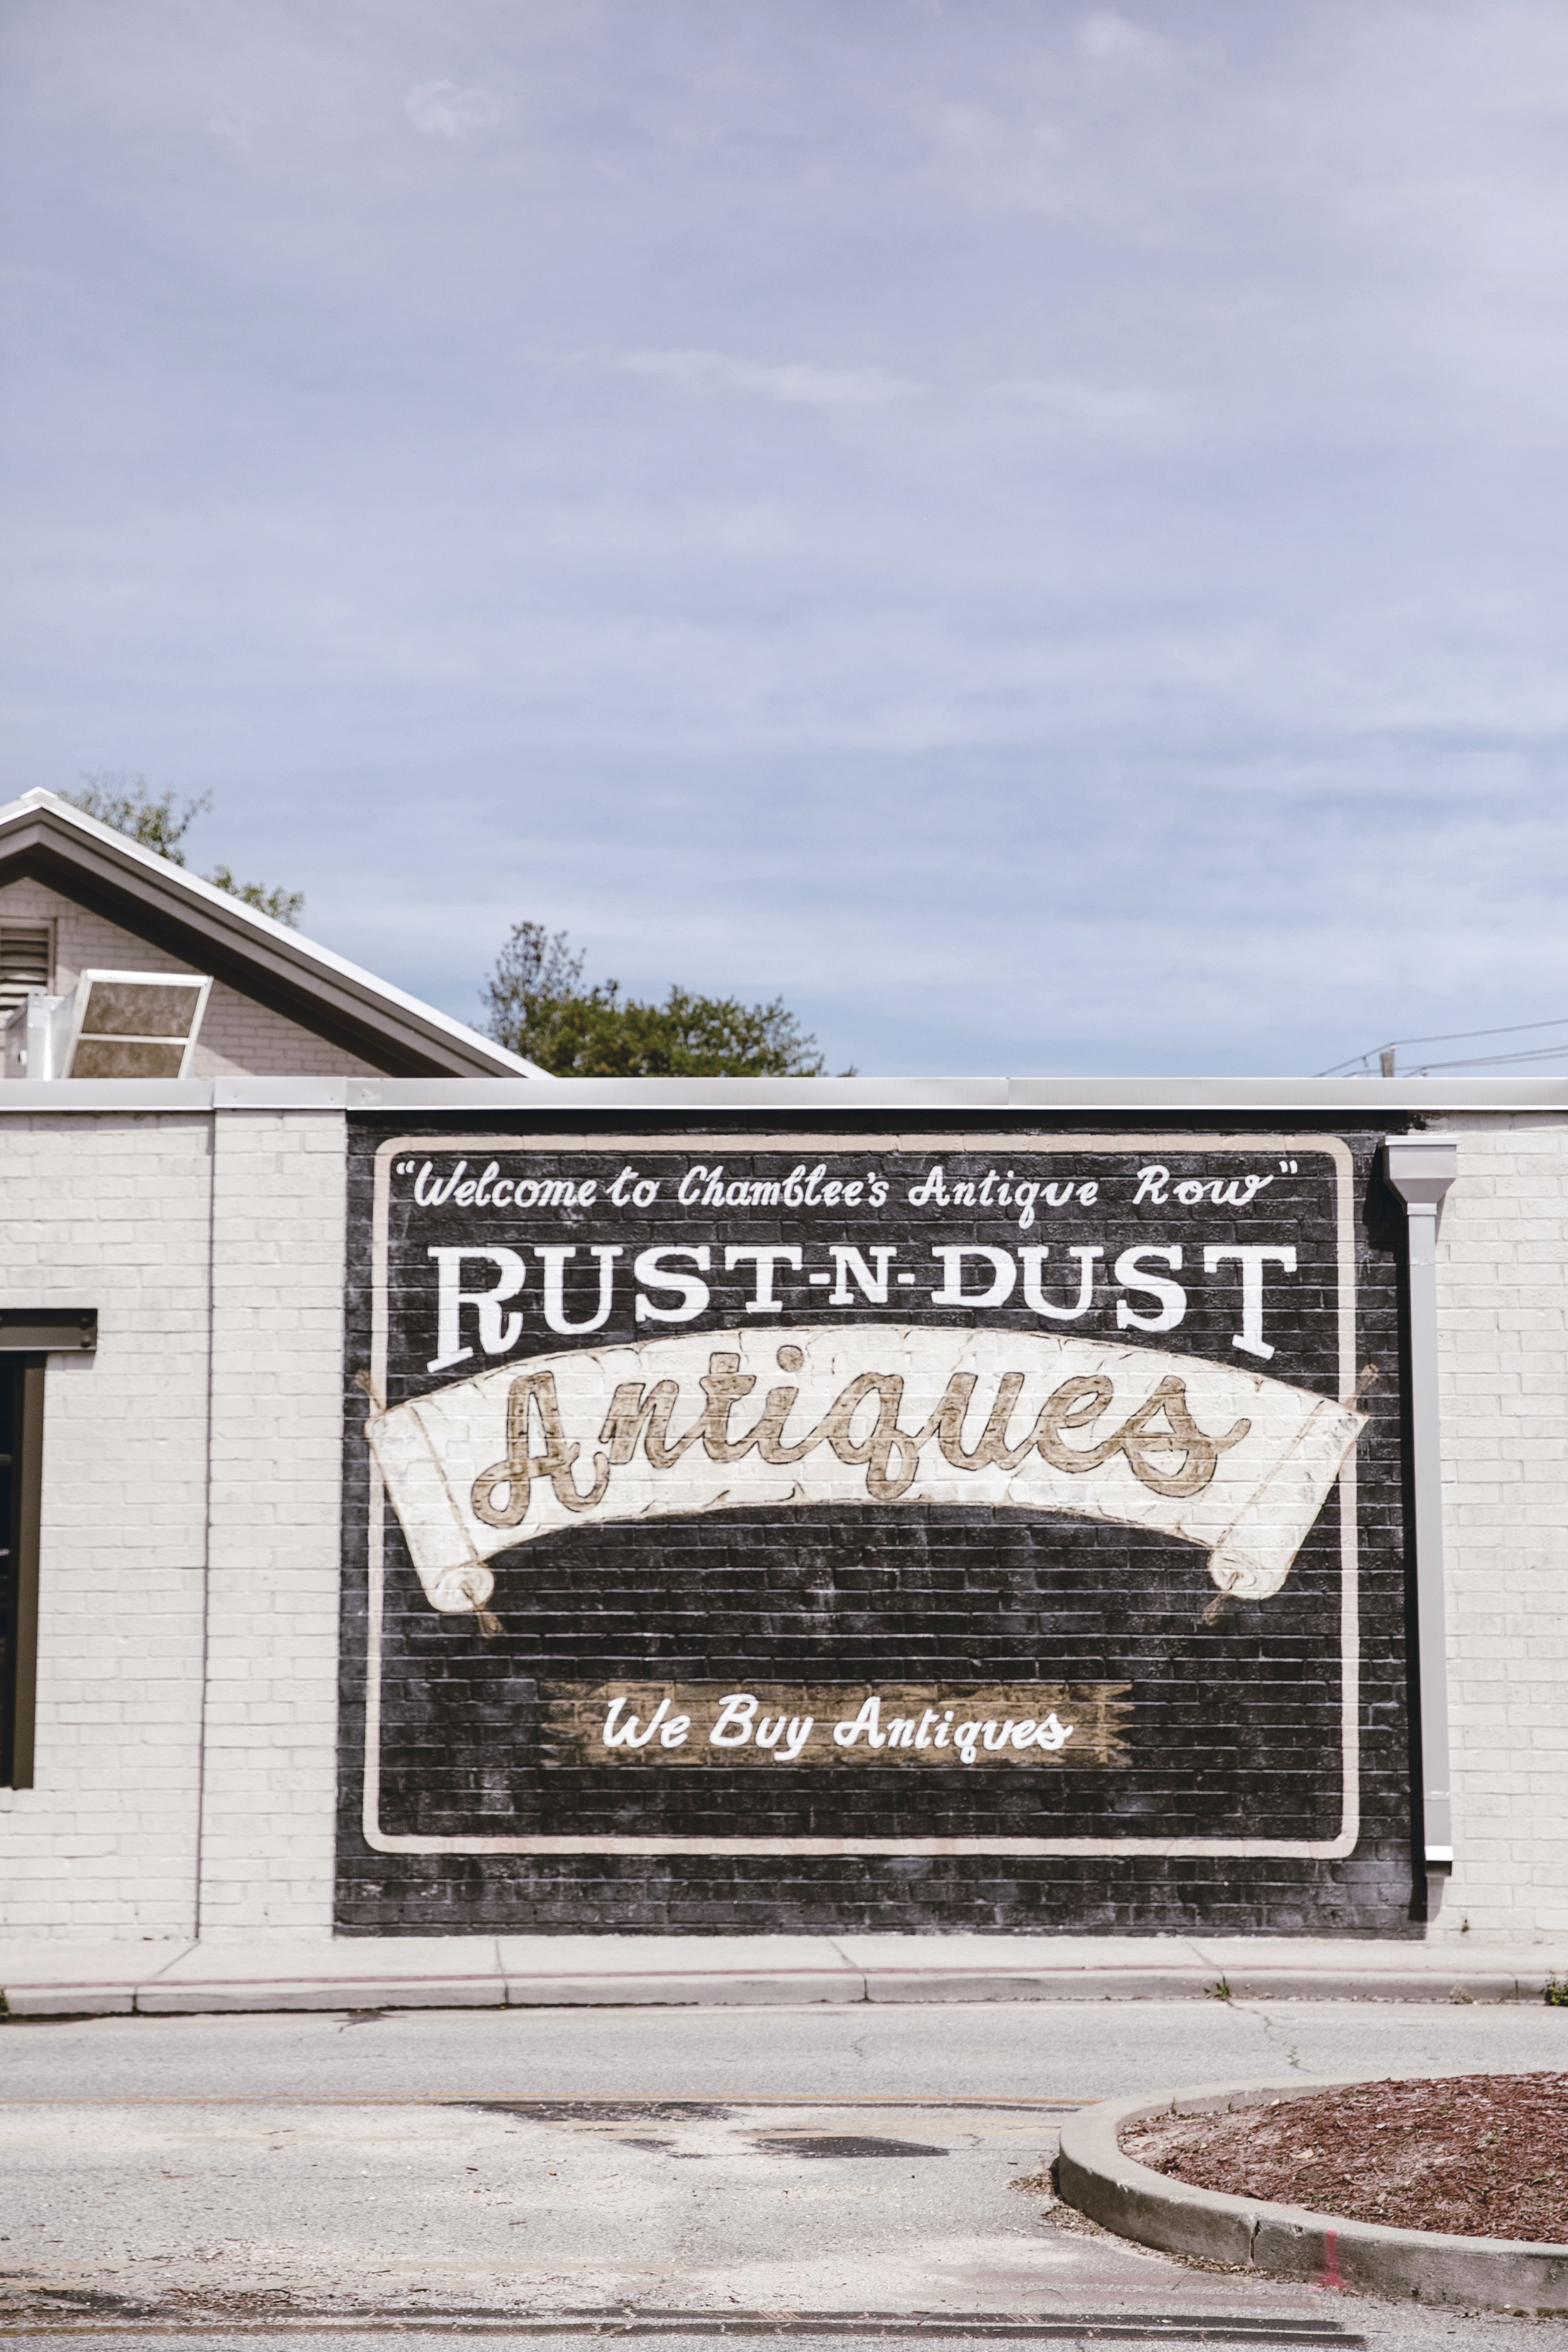 Rust N Dust Antiques painted sign in Chamblee GA / heirloomed